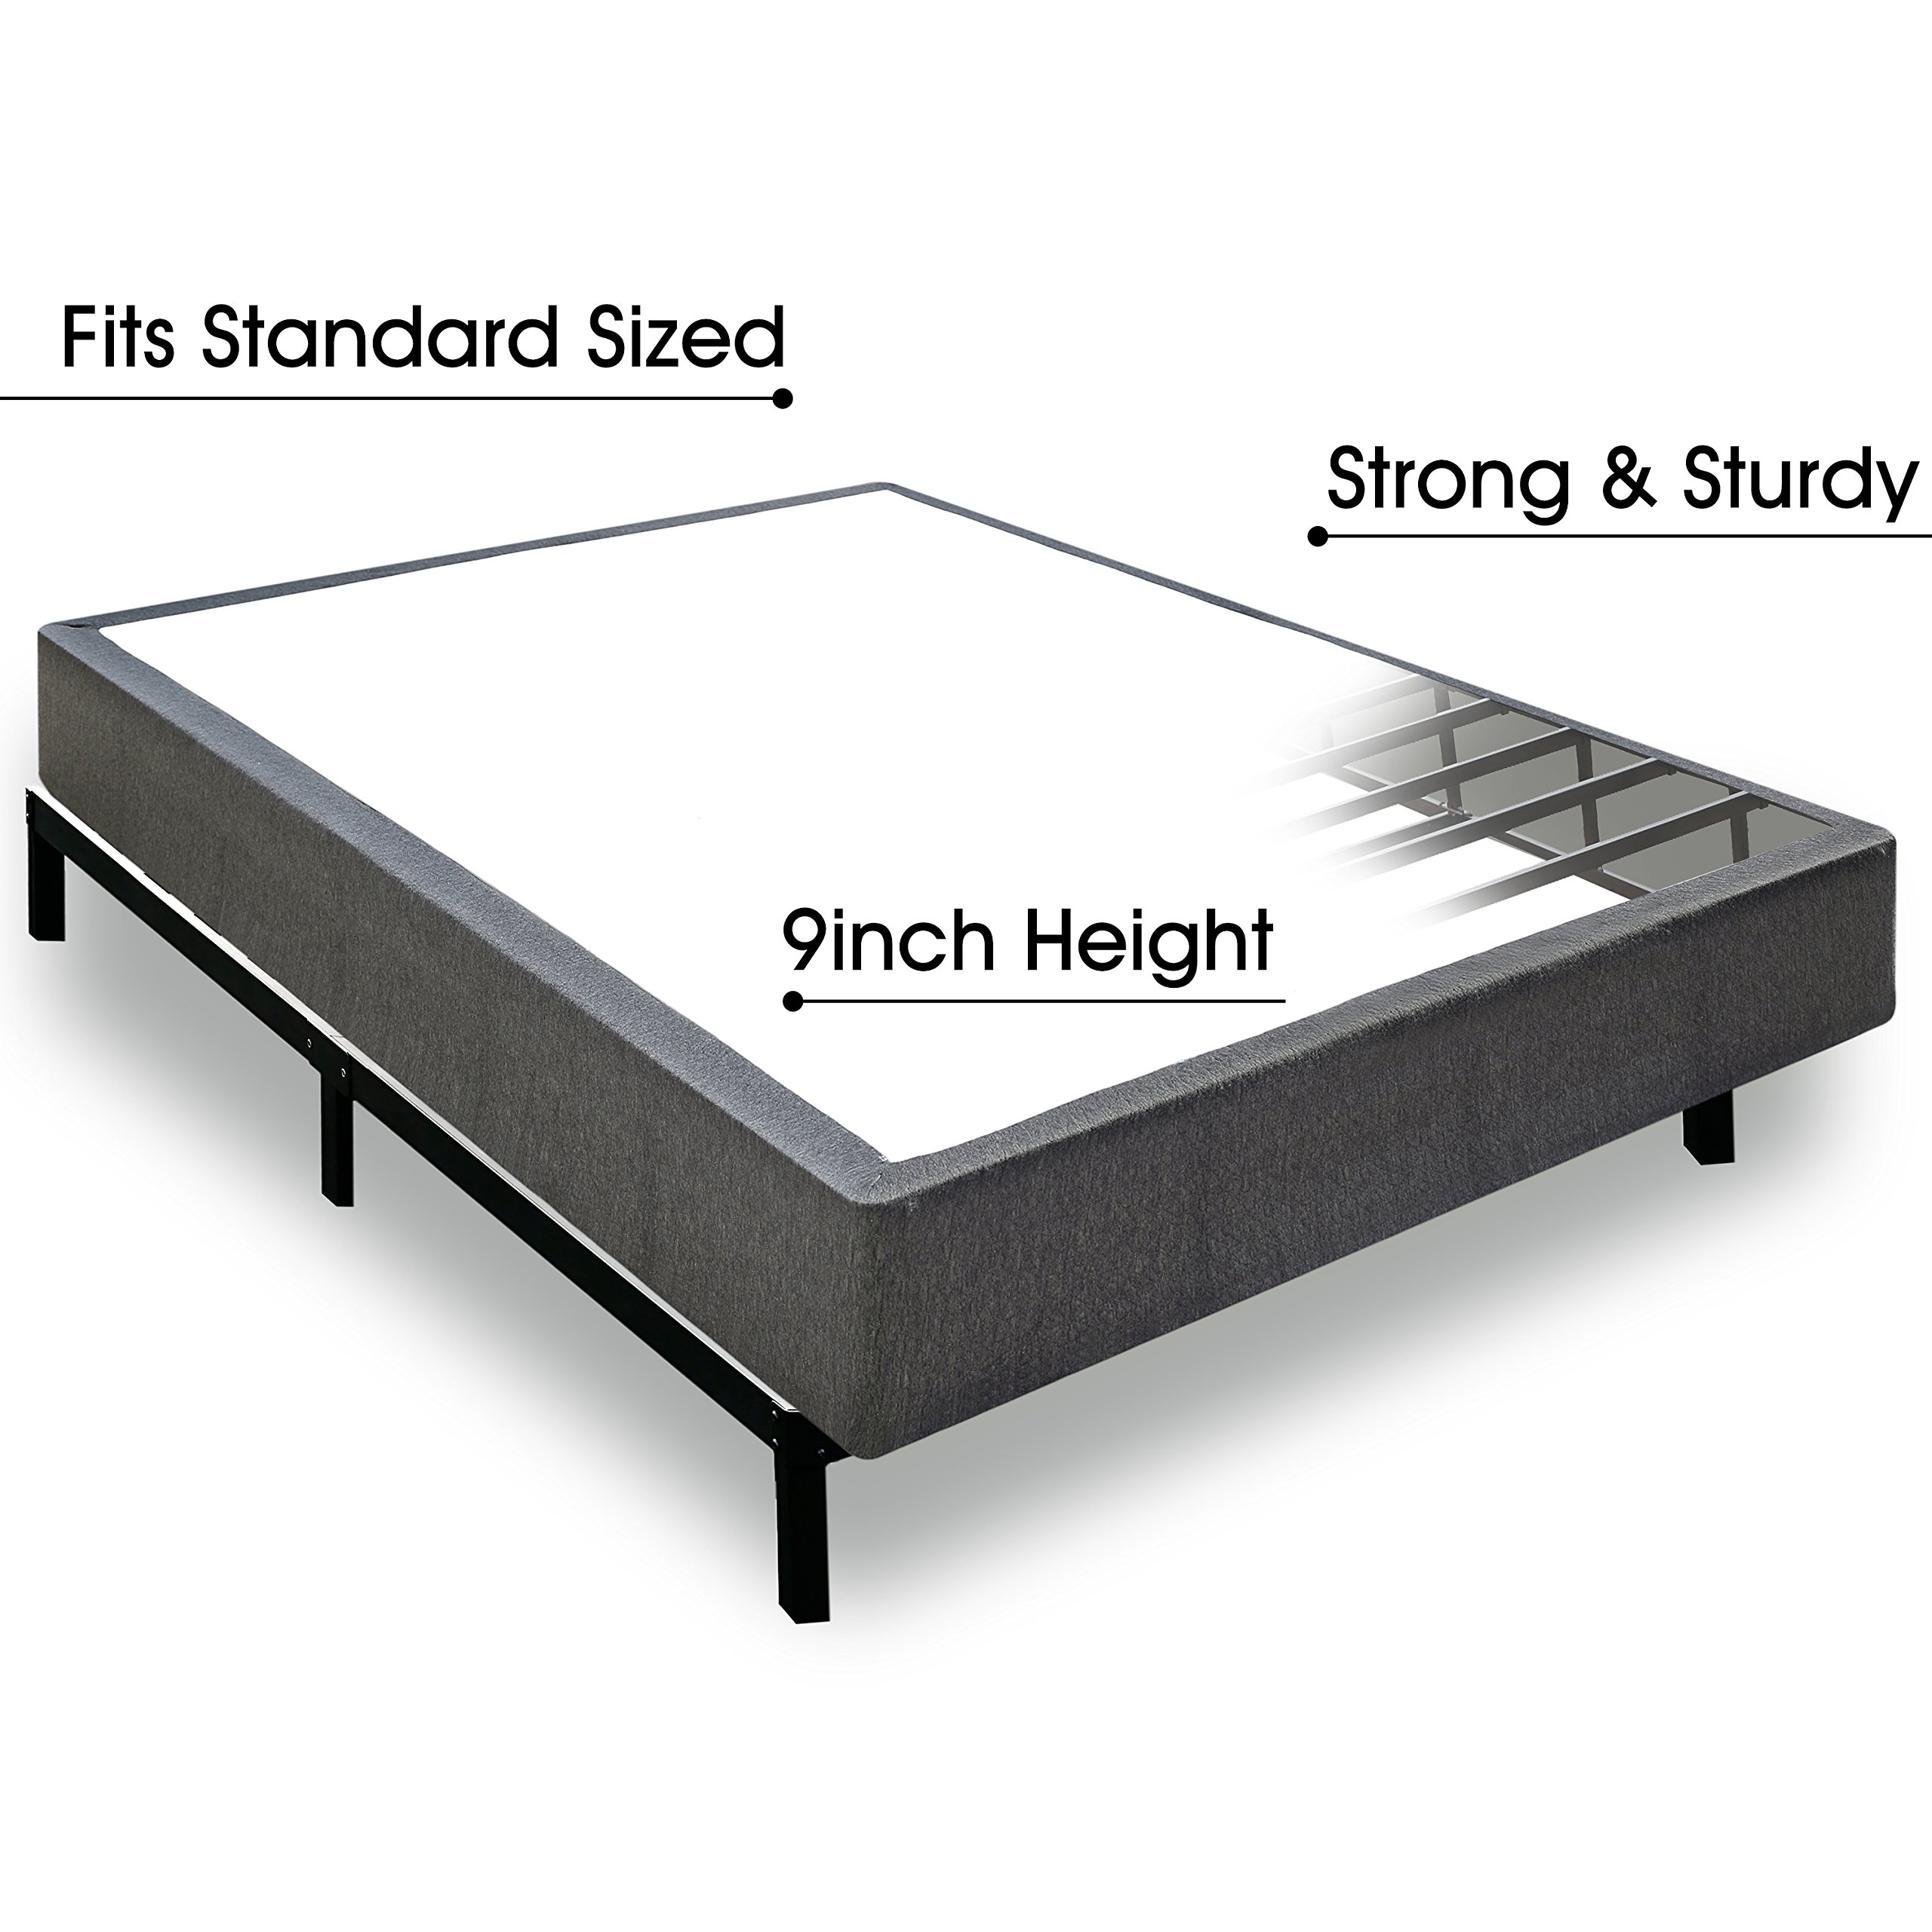 cheaper b2c2c deb88 TATAGO 3000lbs Max Weight Capacity 9 Inch Heavy Duty Metal Box Spring  Mattress Foundation, Extra-Strong Support & Non-Slip, No Noise, Easy  Assembly